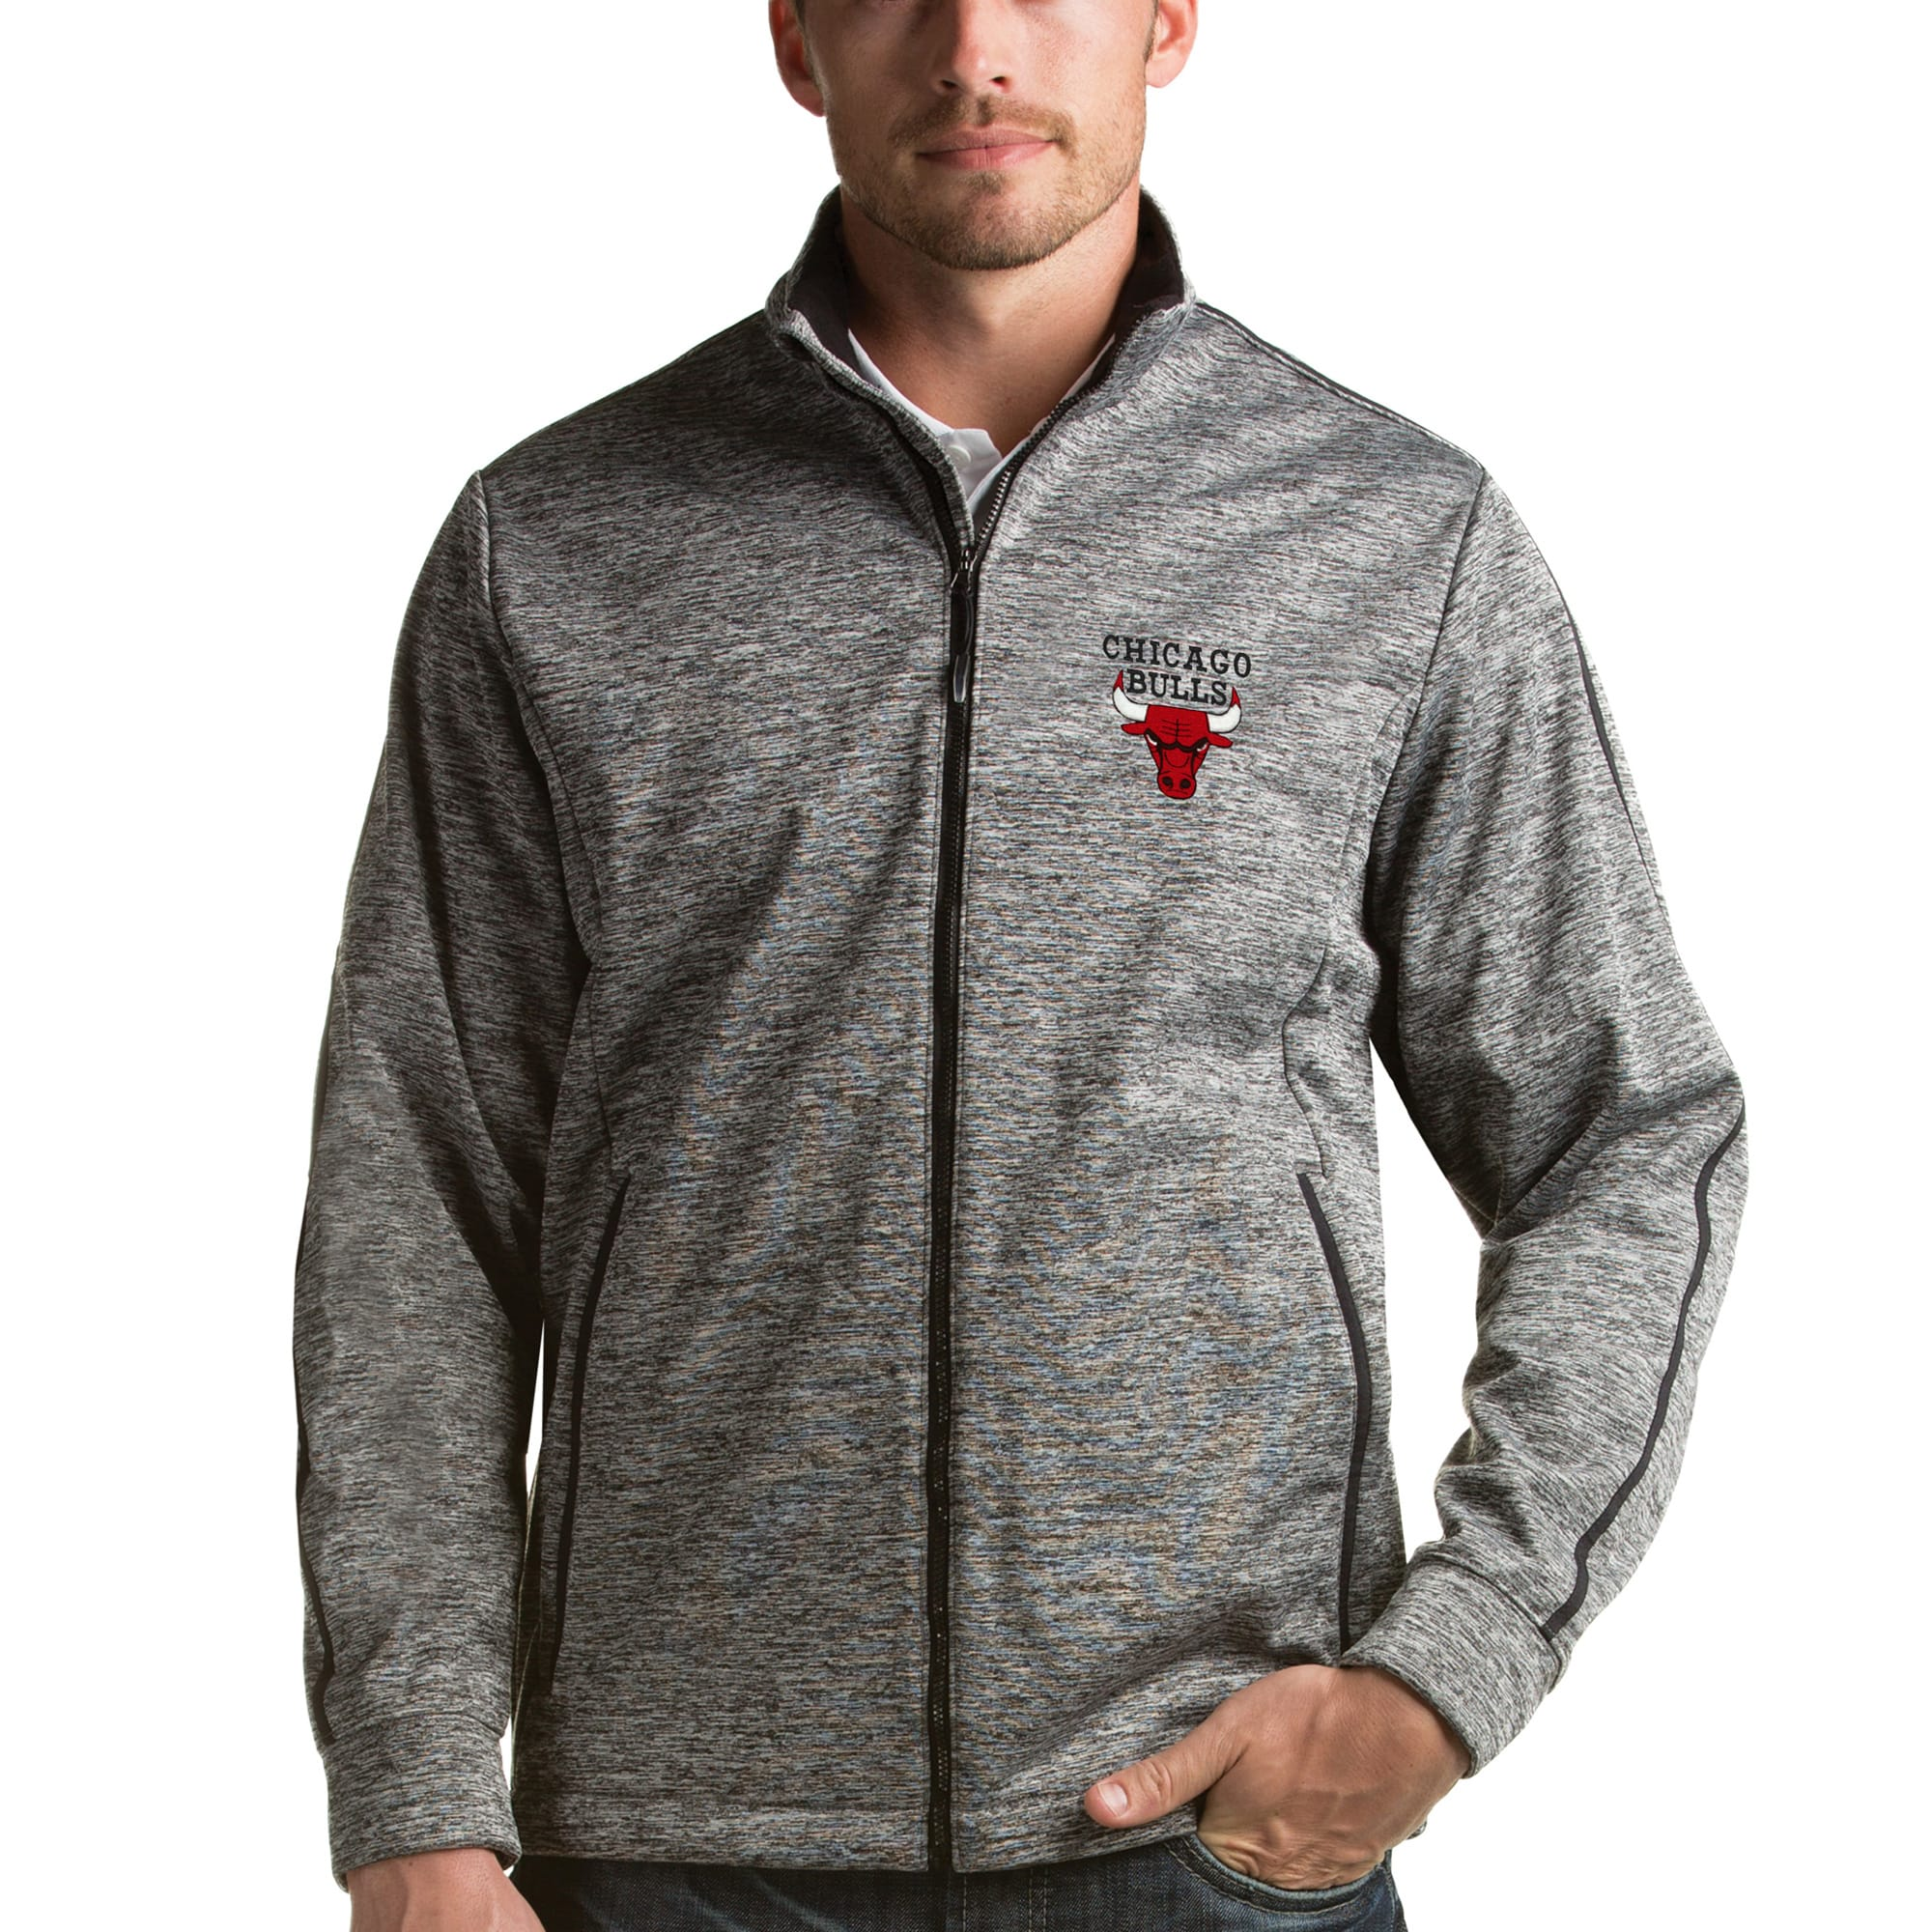 Chicago Bulls Antigua Golf Full-Zip Jacket - Heathered Black